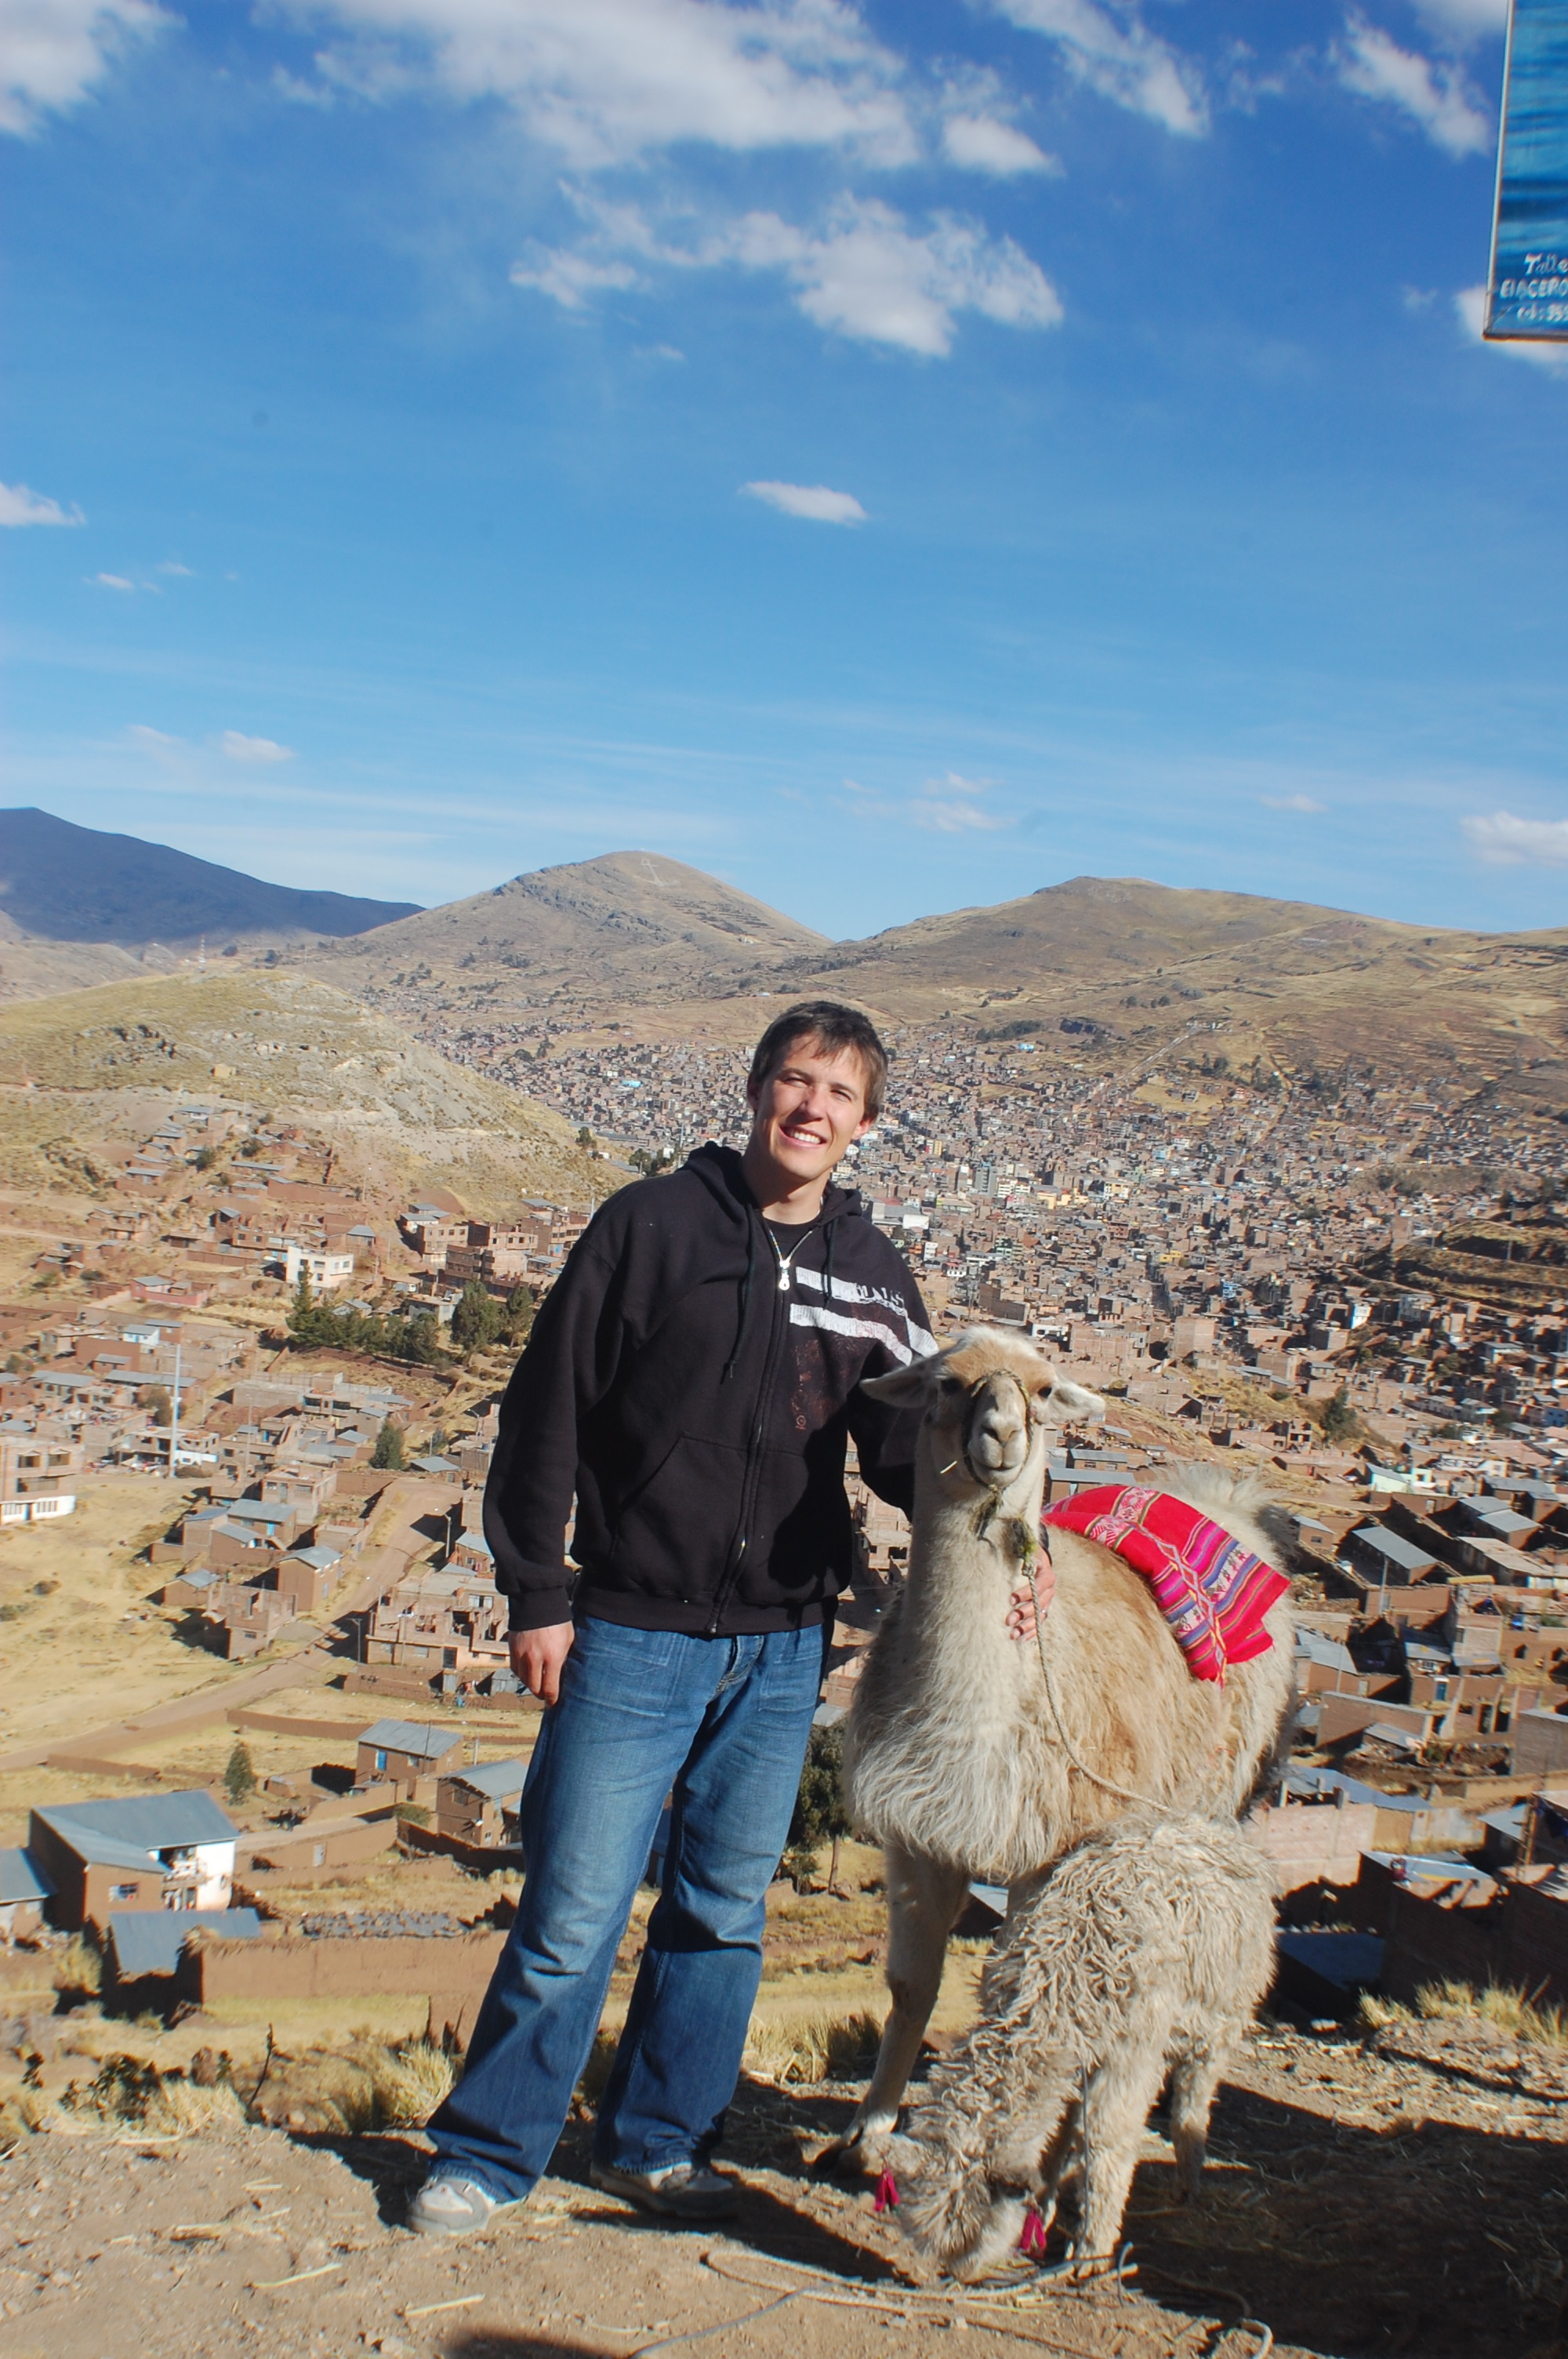 We stopped to pay for a picture with Llama at a Puno overlook on way to Sillustani Towers